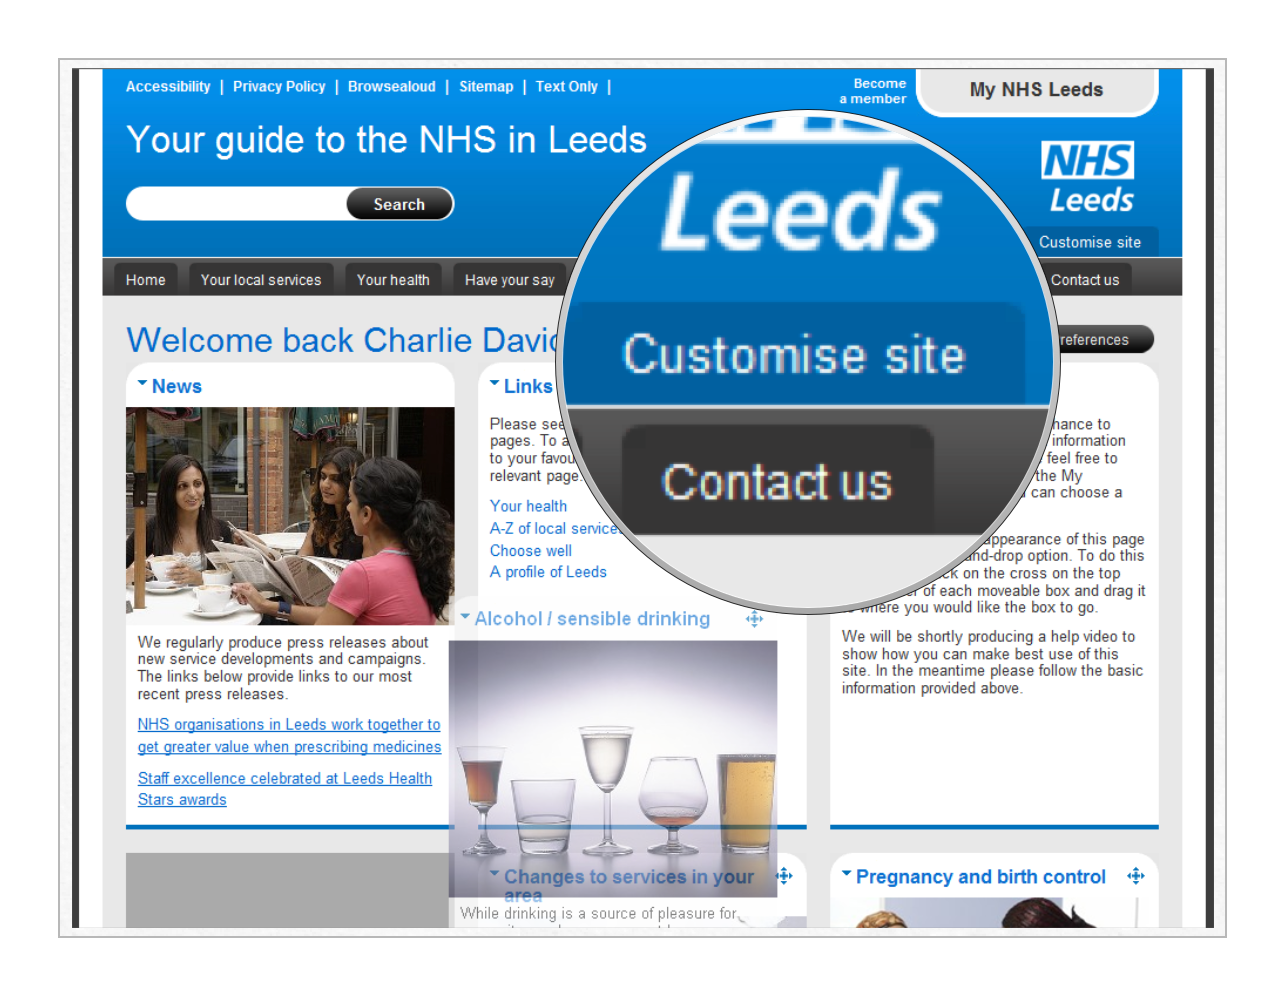 Customisation on the NHS Leeds sites